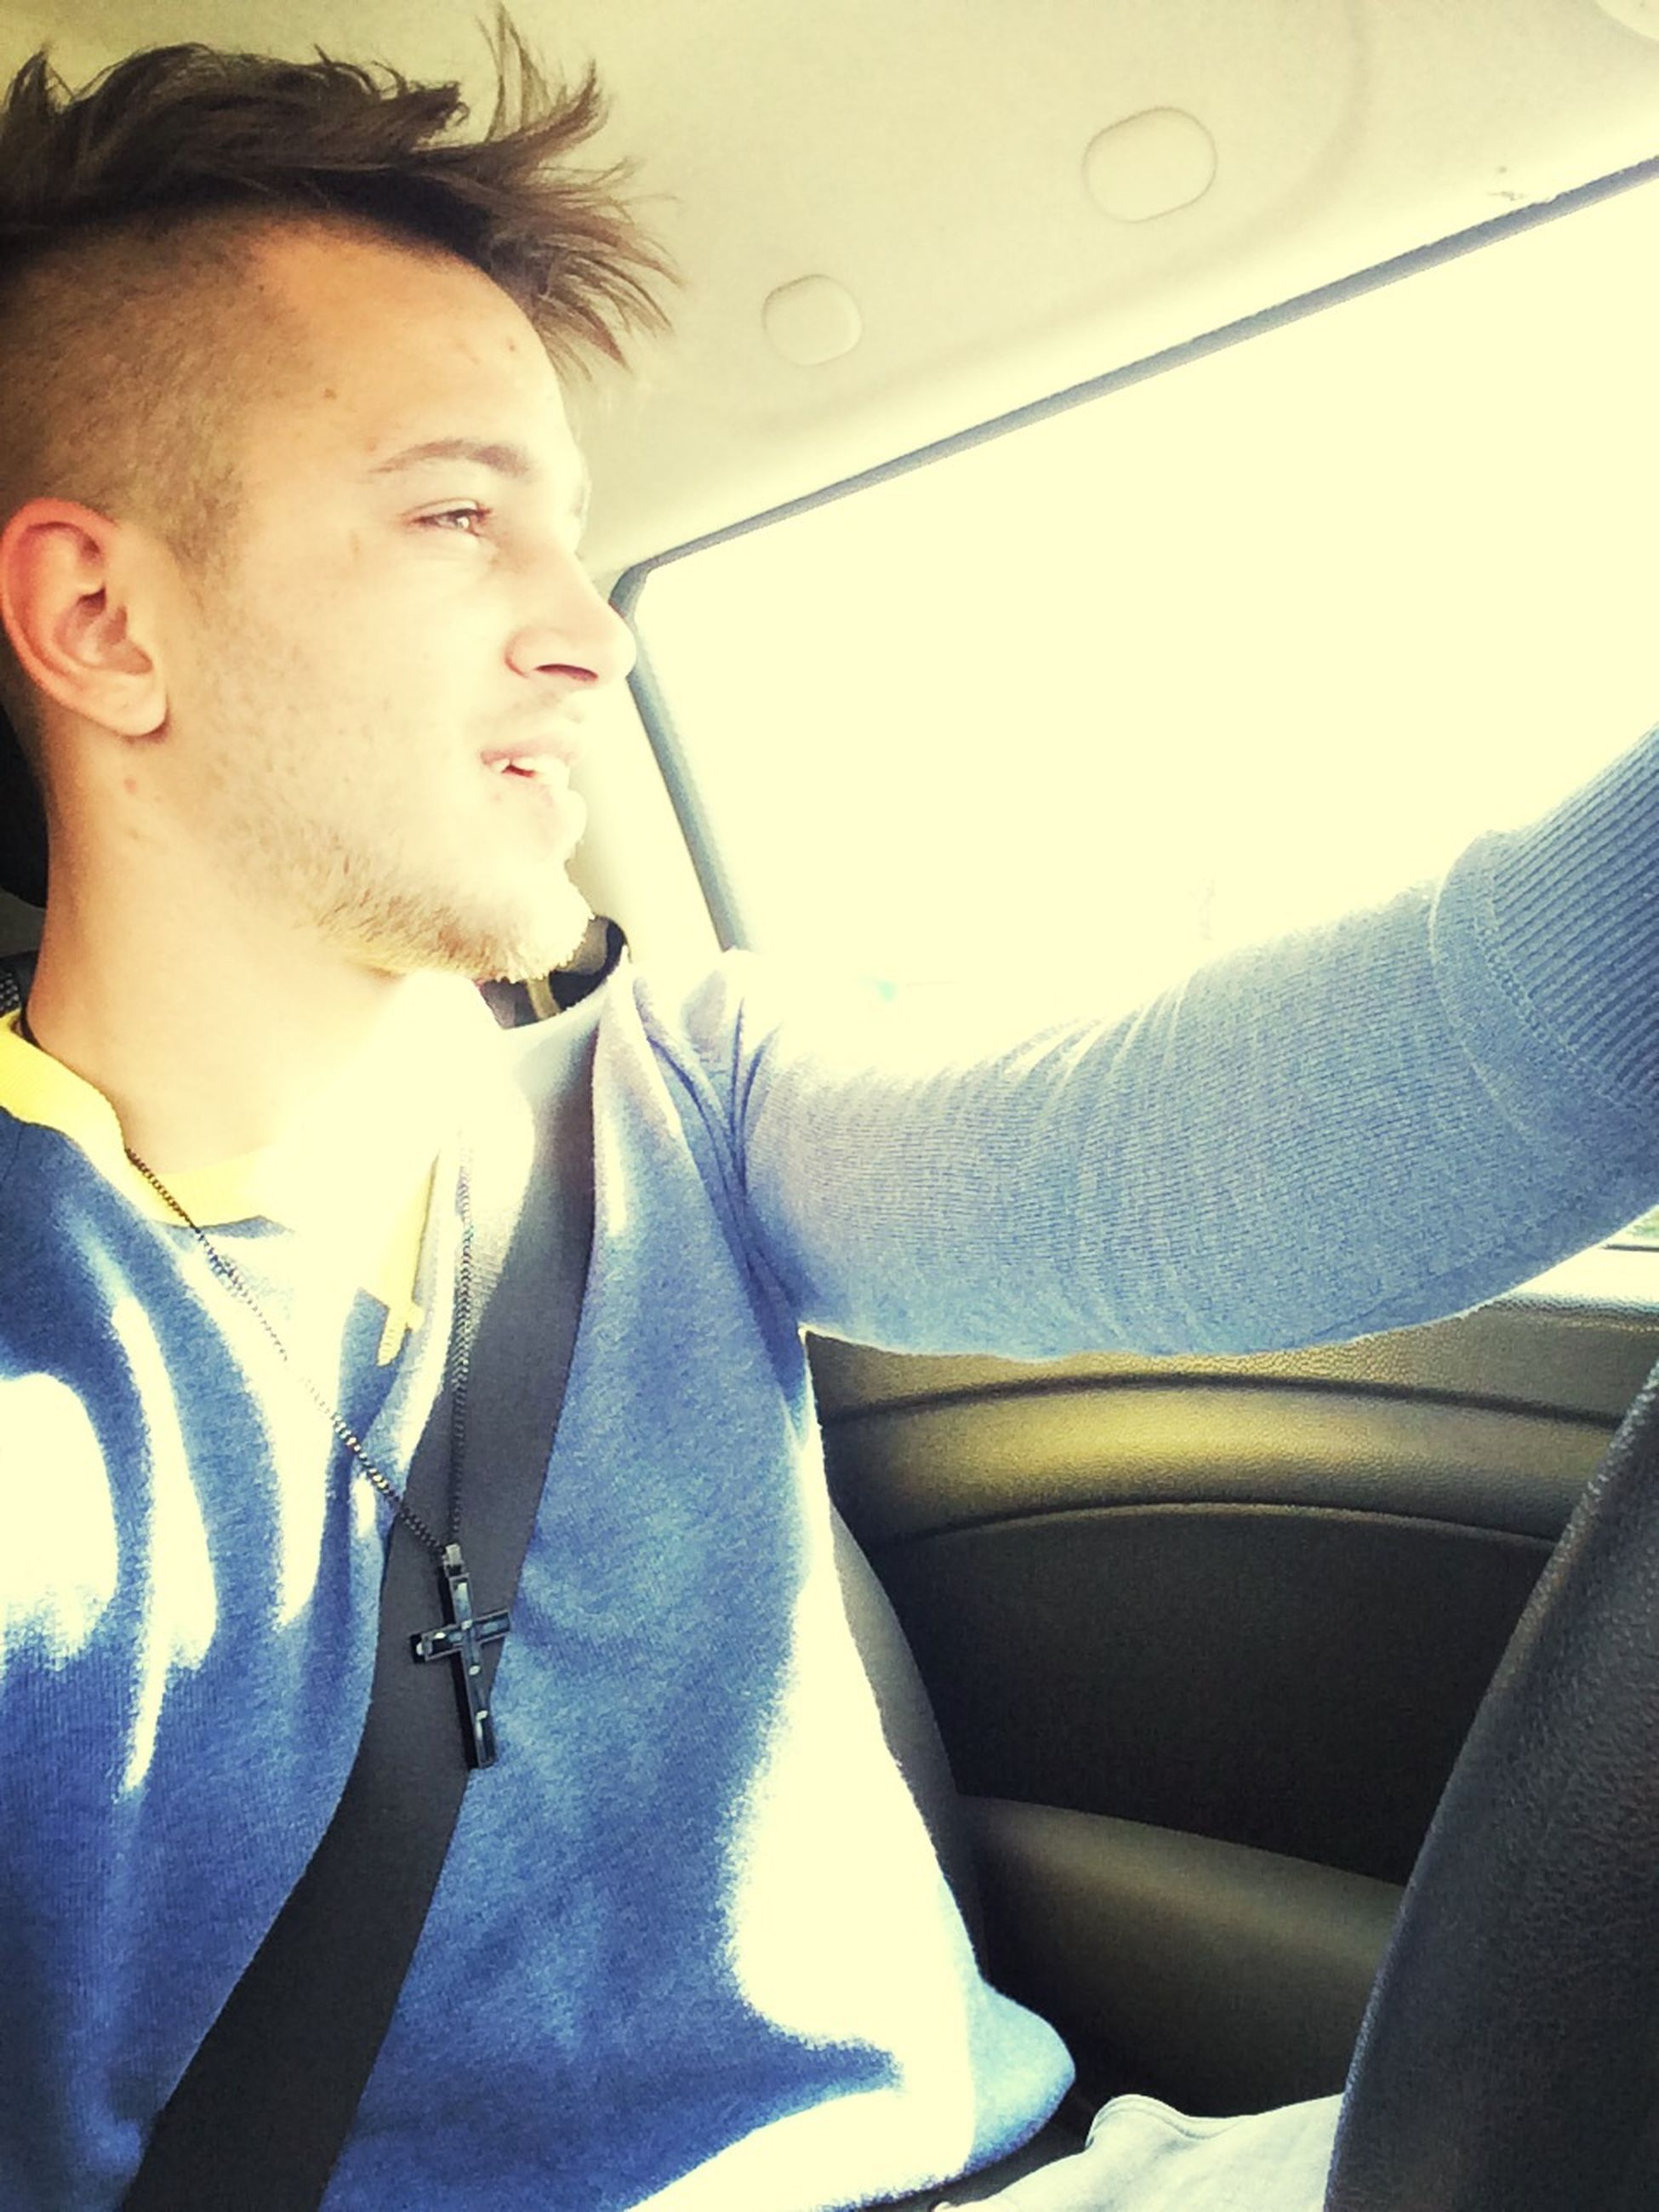 indoors, vehicle interior, young adult, lifestyles, person, transportation, young men, leisure activity, mode of transport, headshot, portrait, looking at camera, sitting, car interior, relaxation, casual clothing, car, window